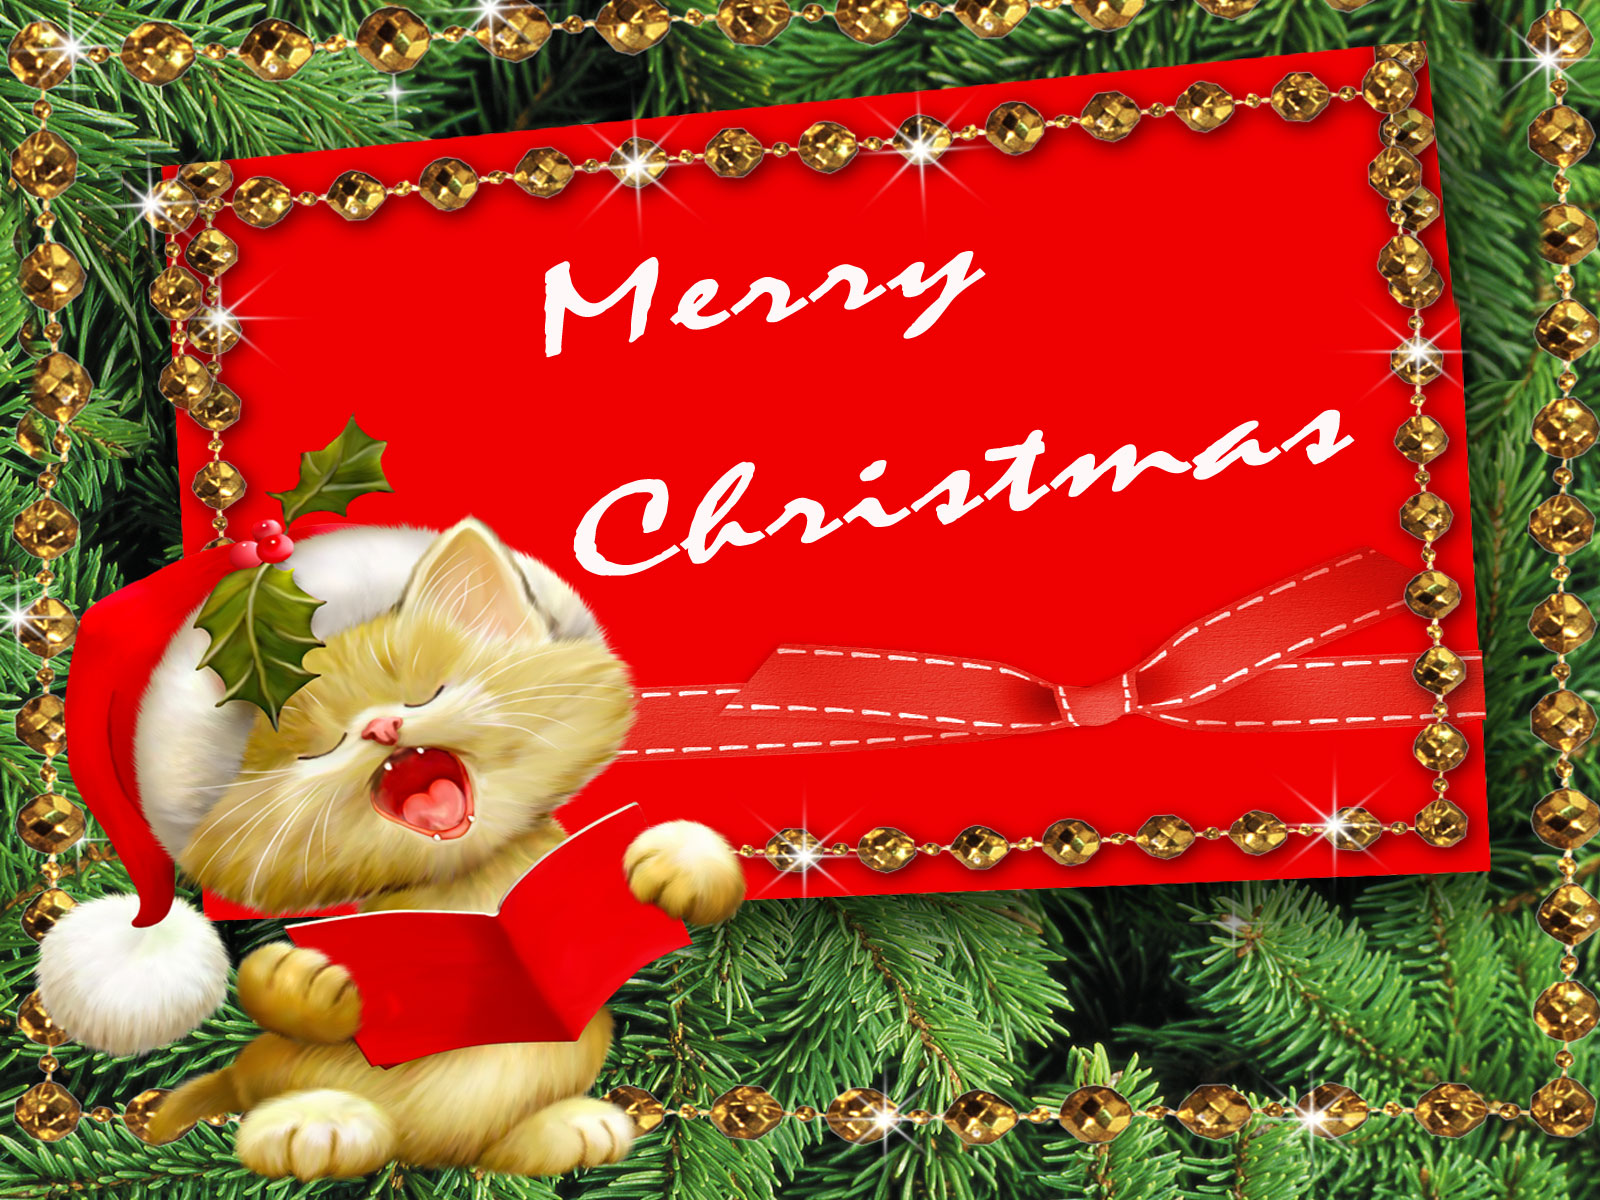 Christmas Desktop Backgrounds Download Merry Christmas Wallpaper 1600x1200